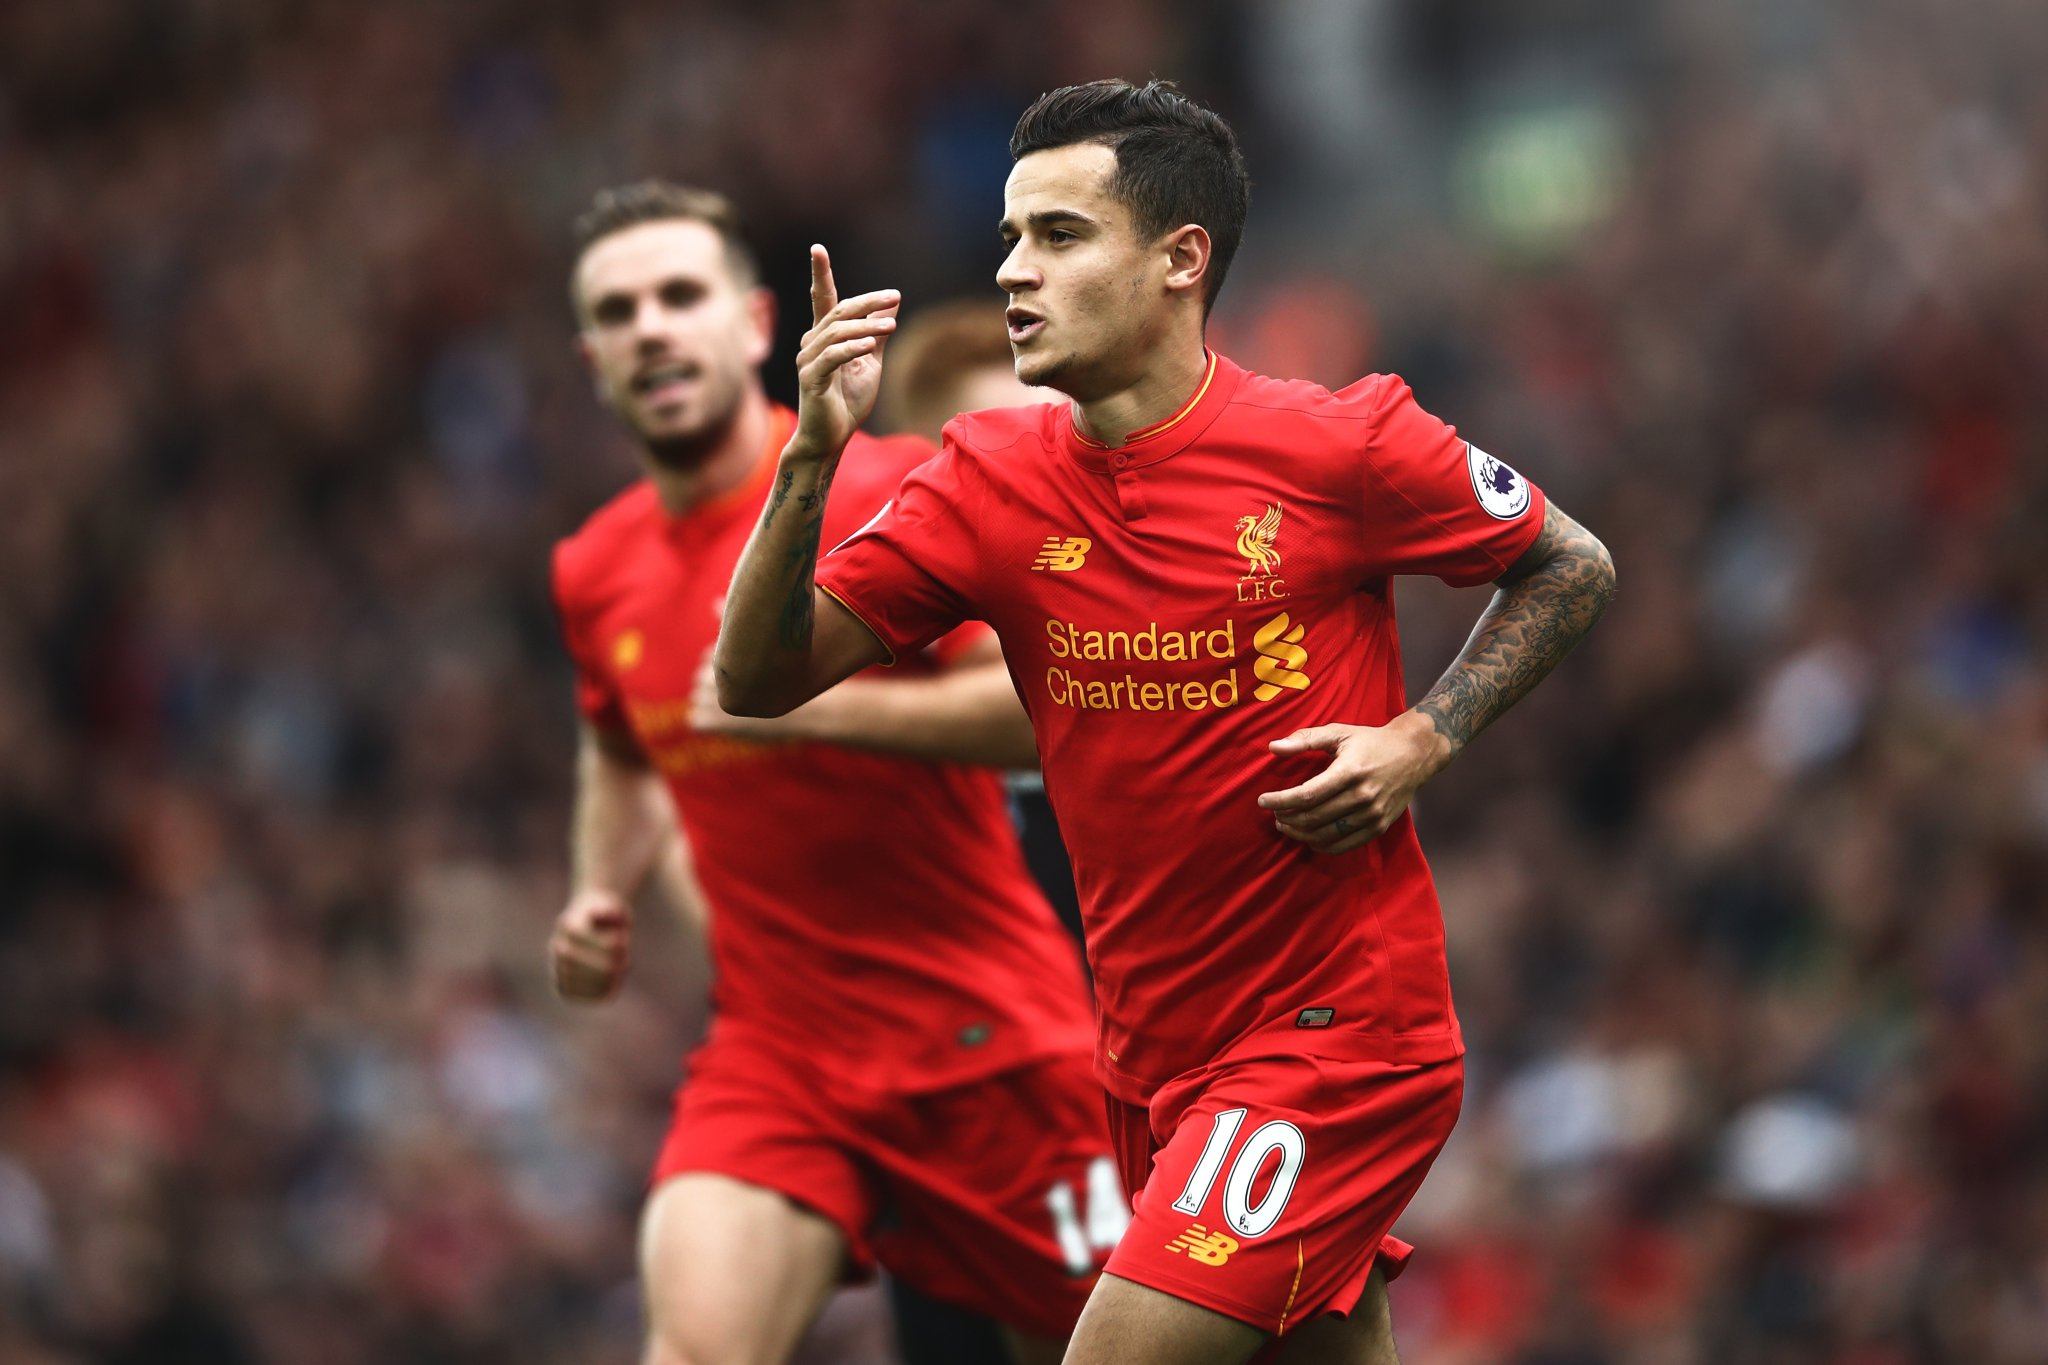 Stats suggest Liverpool's attack is just as good without Coutinho